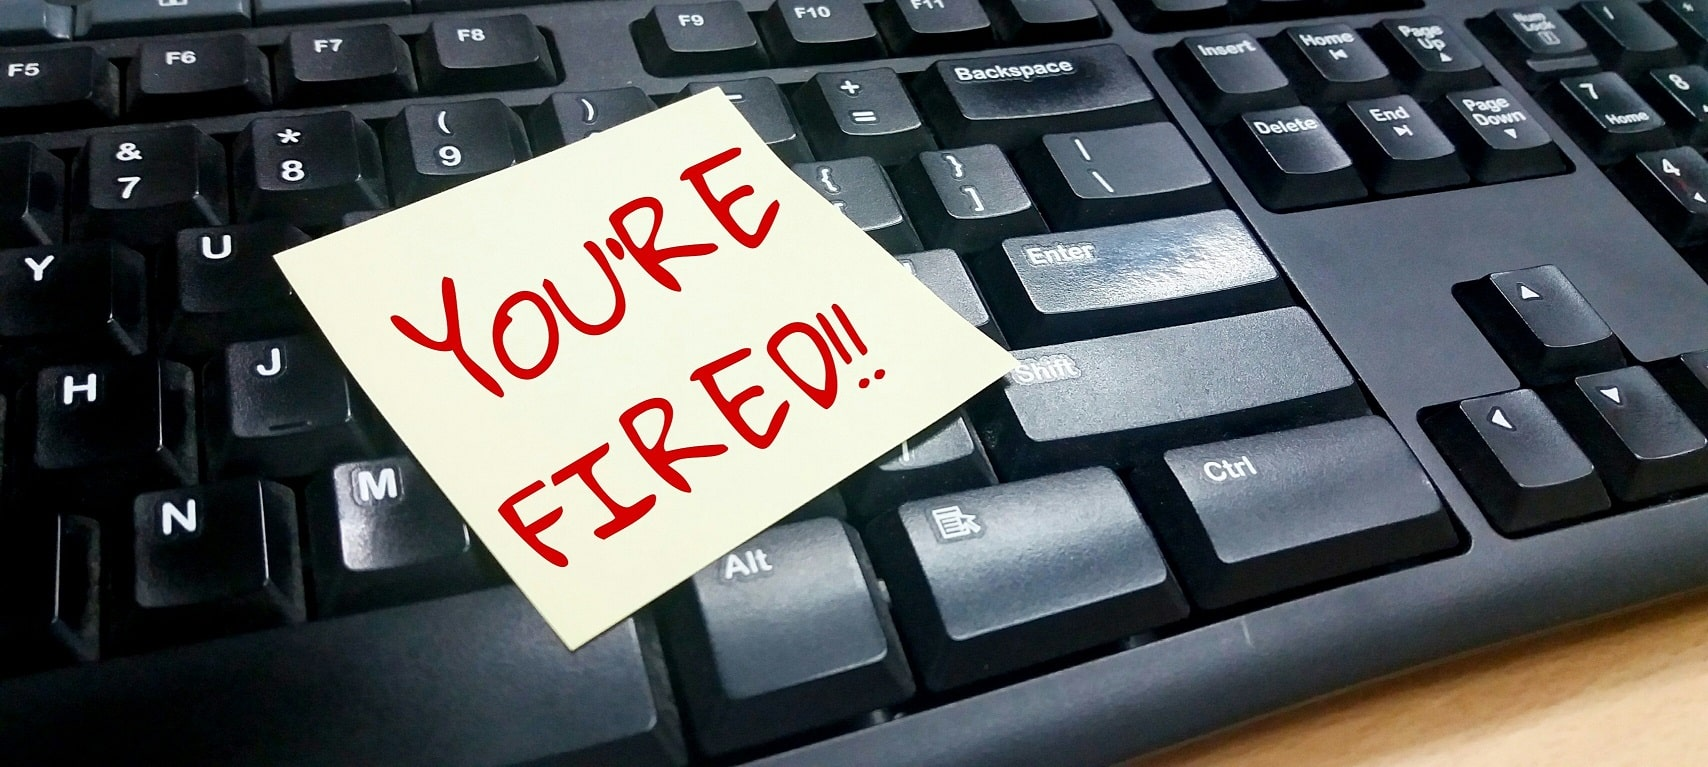 You're Fired (Terminated)